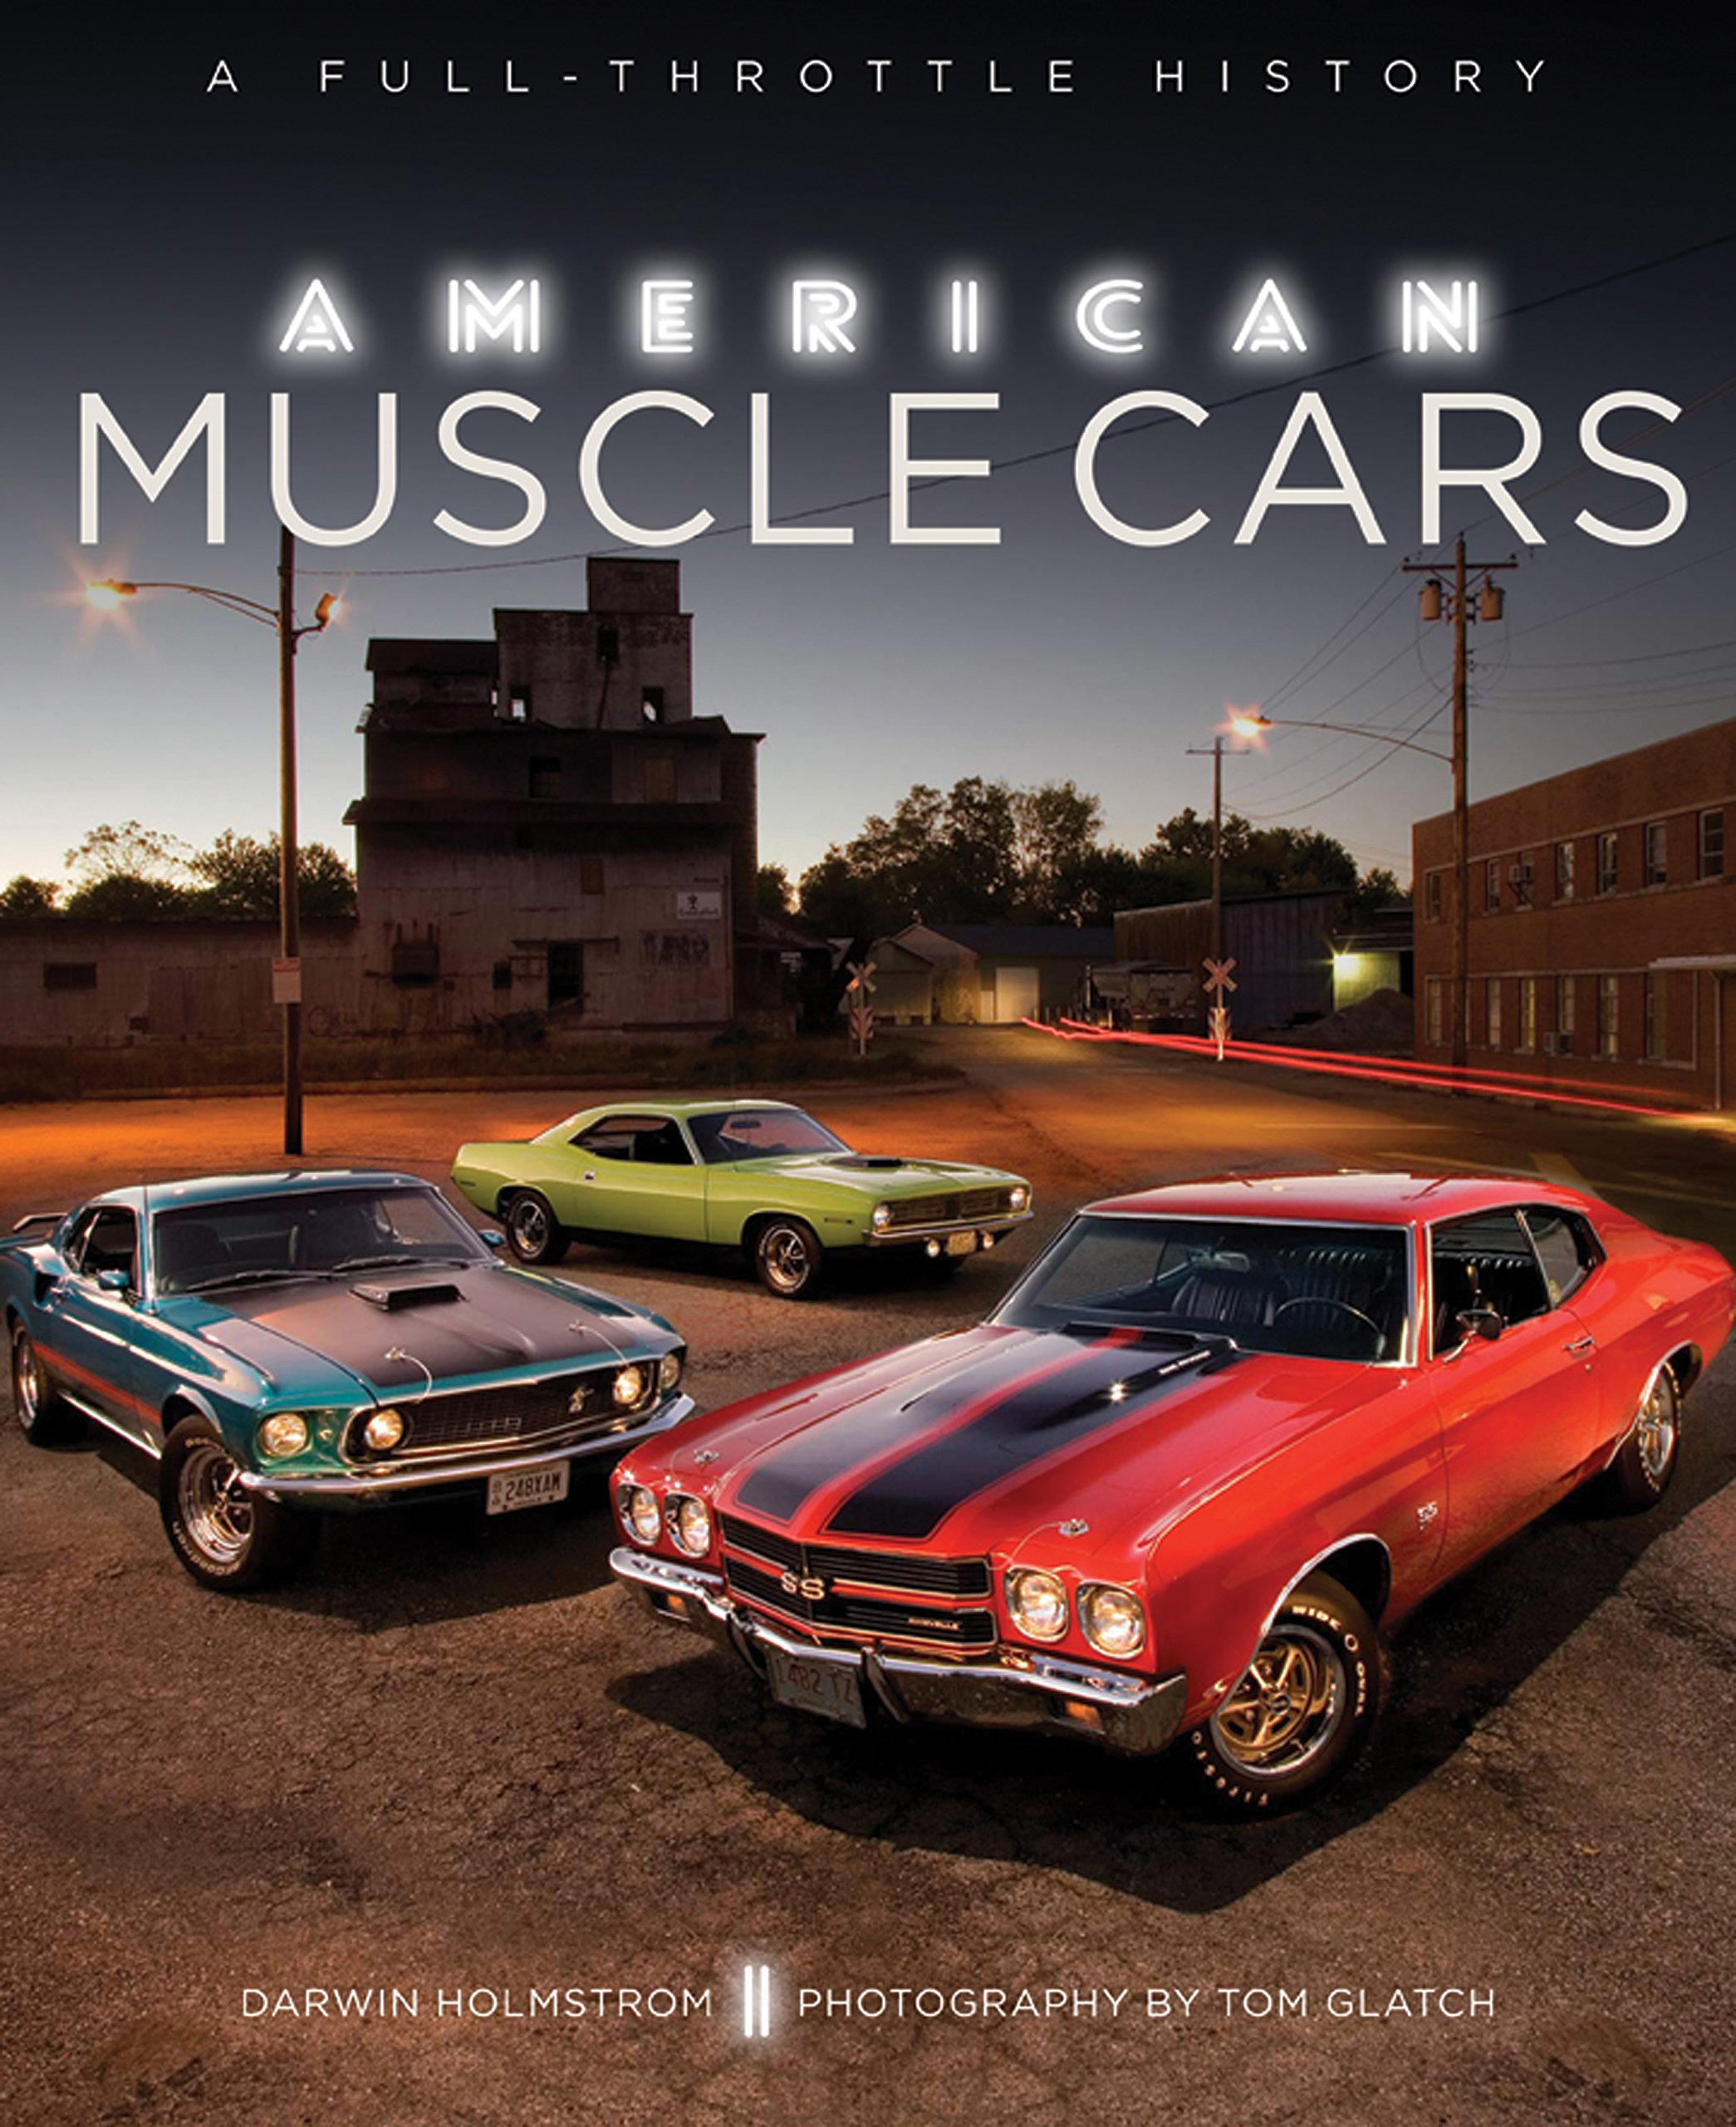 American Muscle Car >> American Muscle Cars A Full Throttle History Darwin Holmstrom Tom